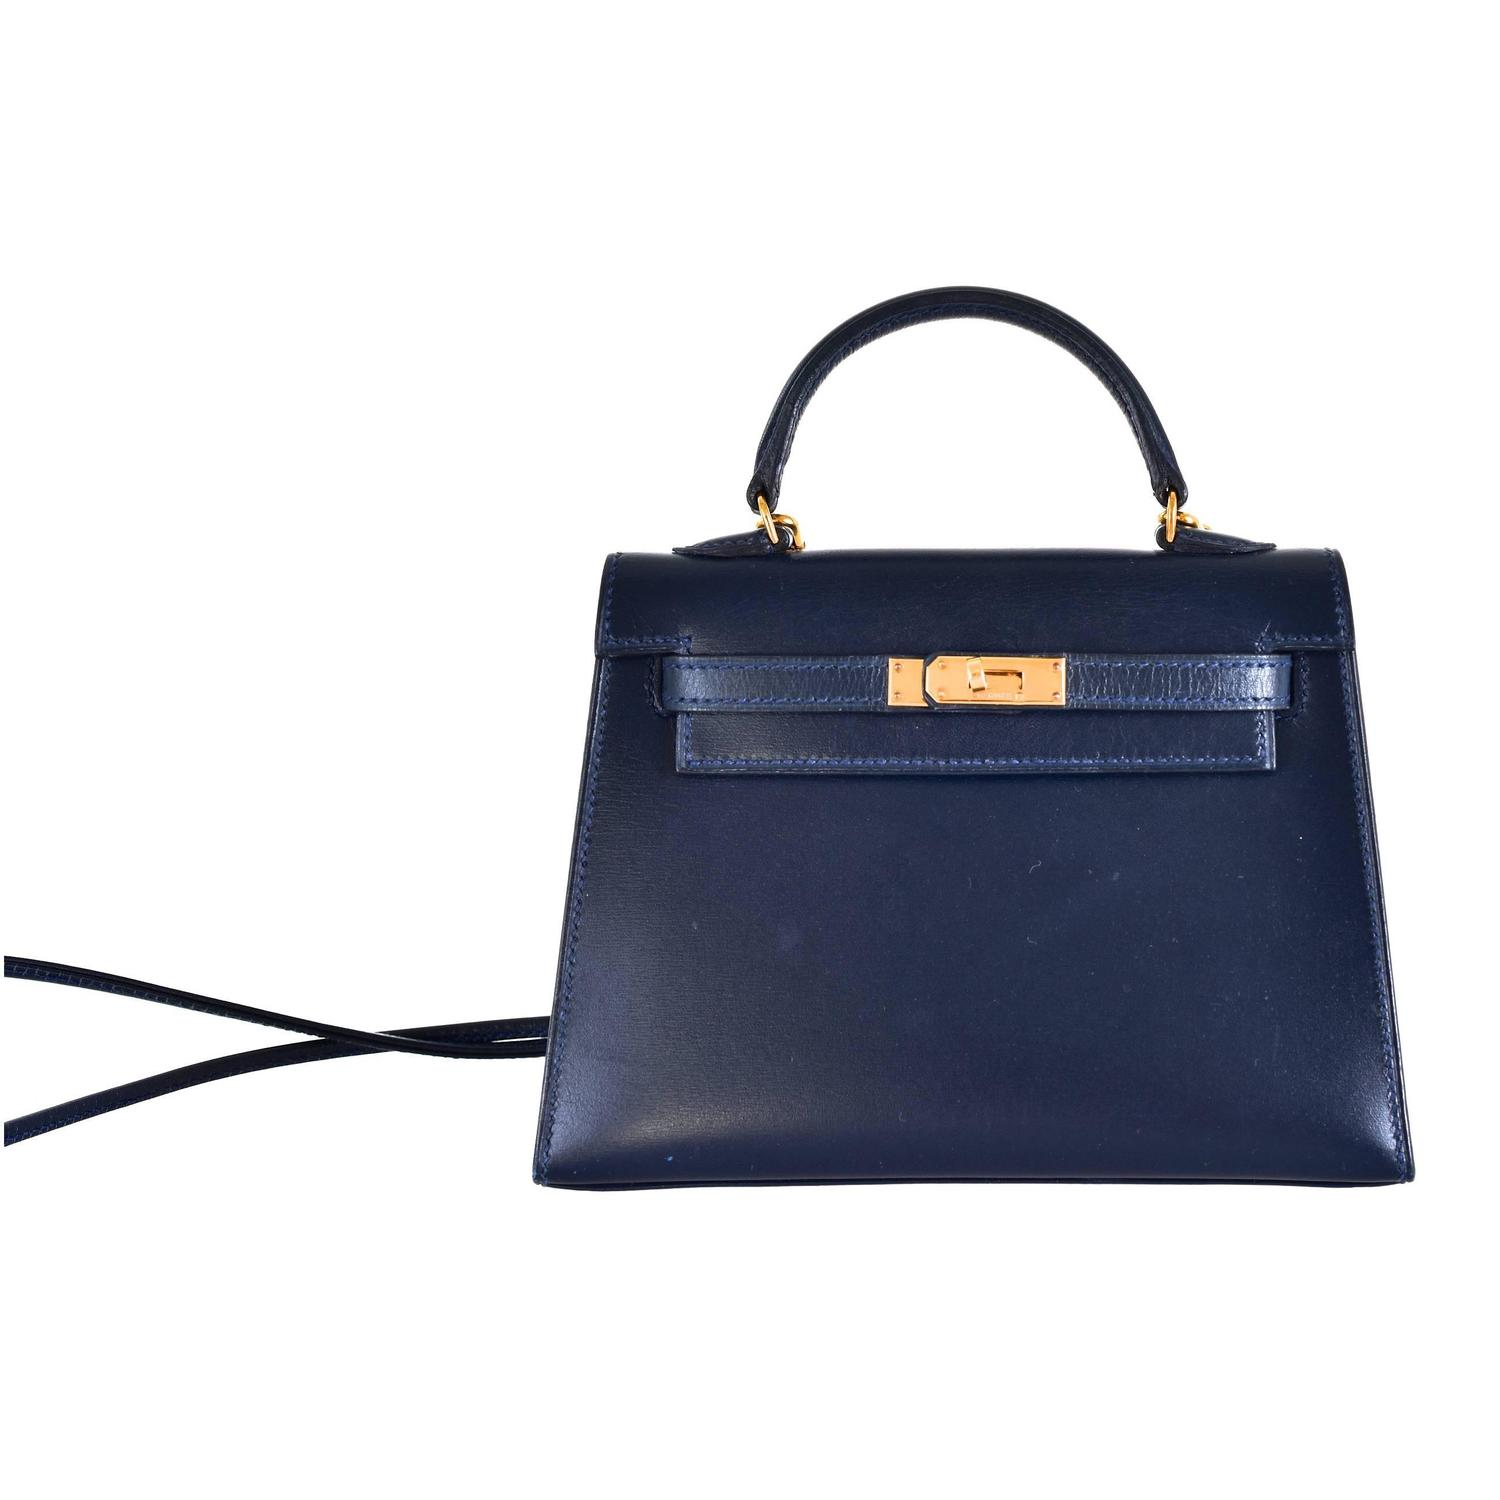 celine stingray box bag 8g4s  celine stingray box bag